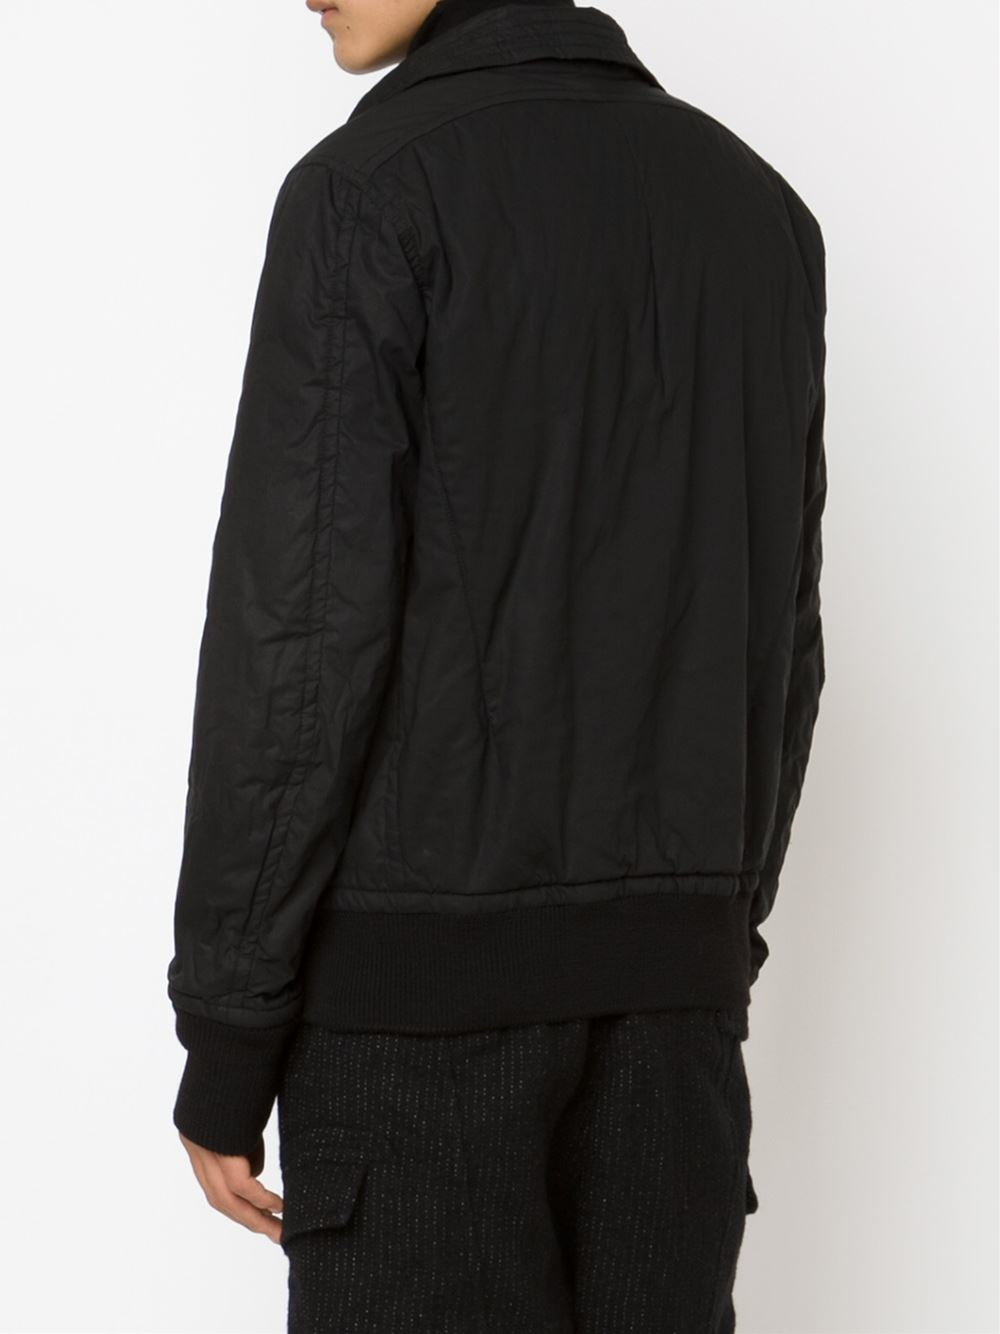 The Viridi-anne Cotton Zipped Bomber Jacket in Black for Men